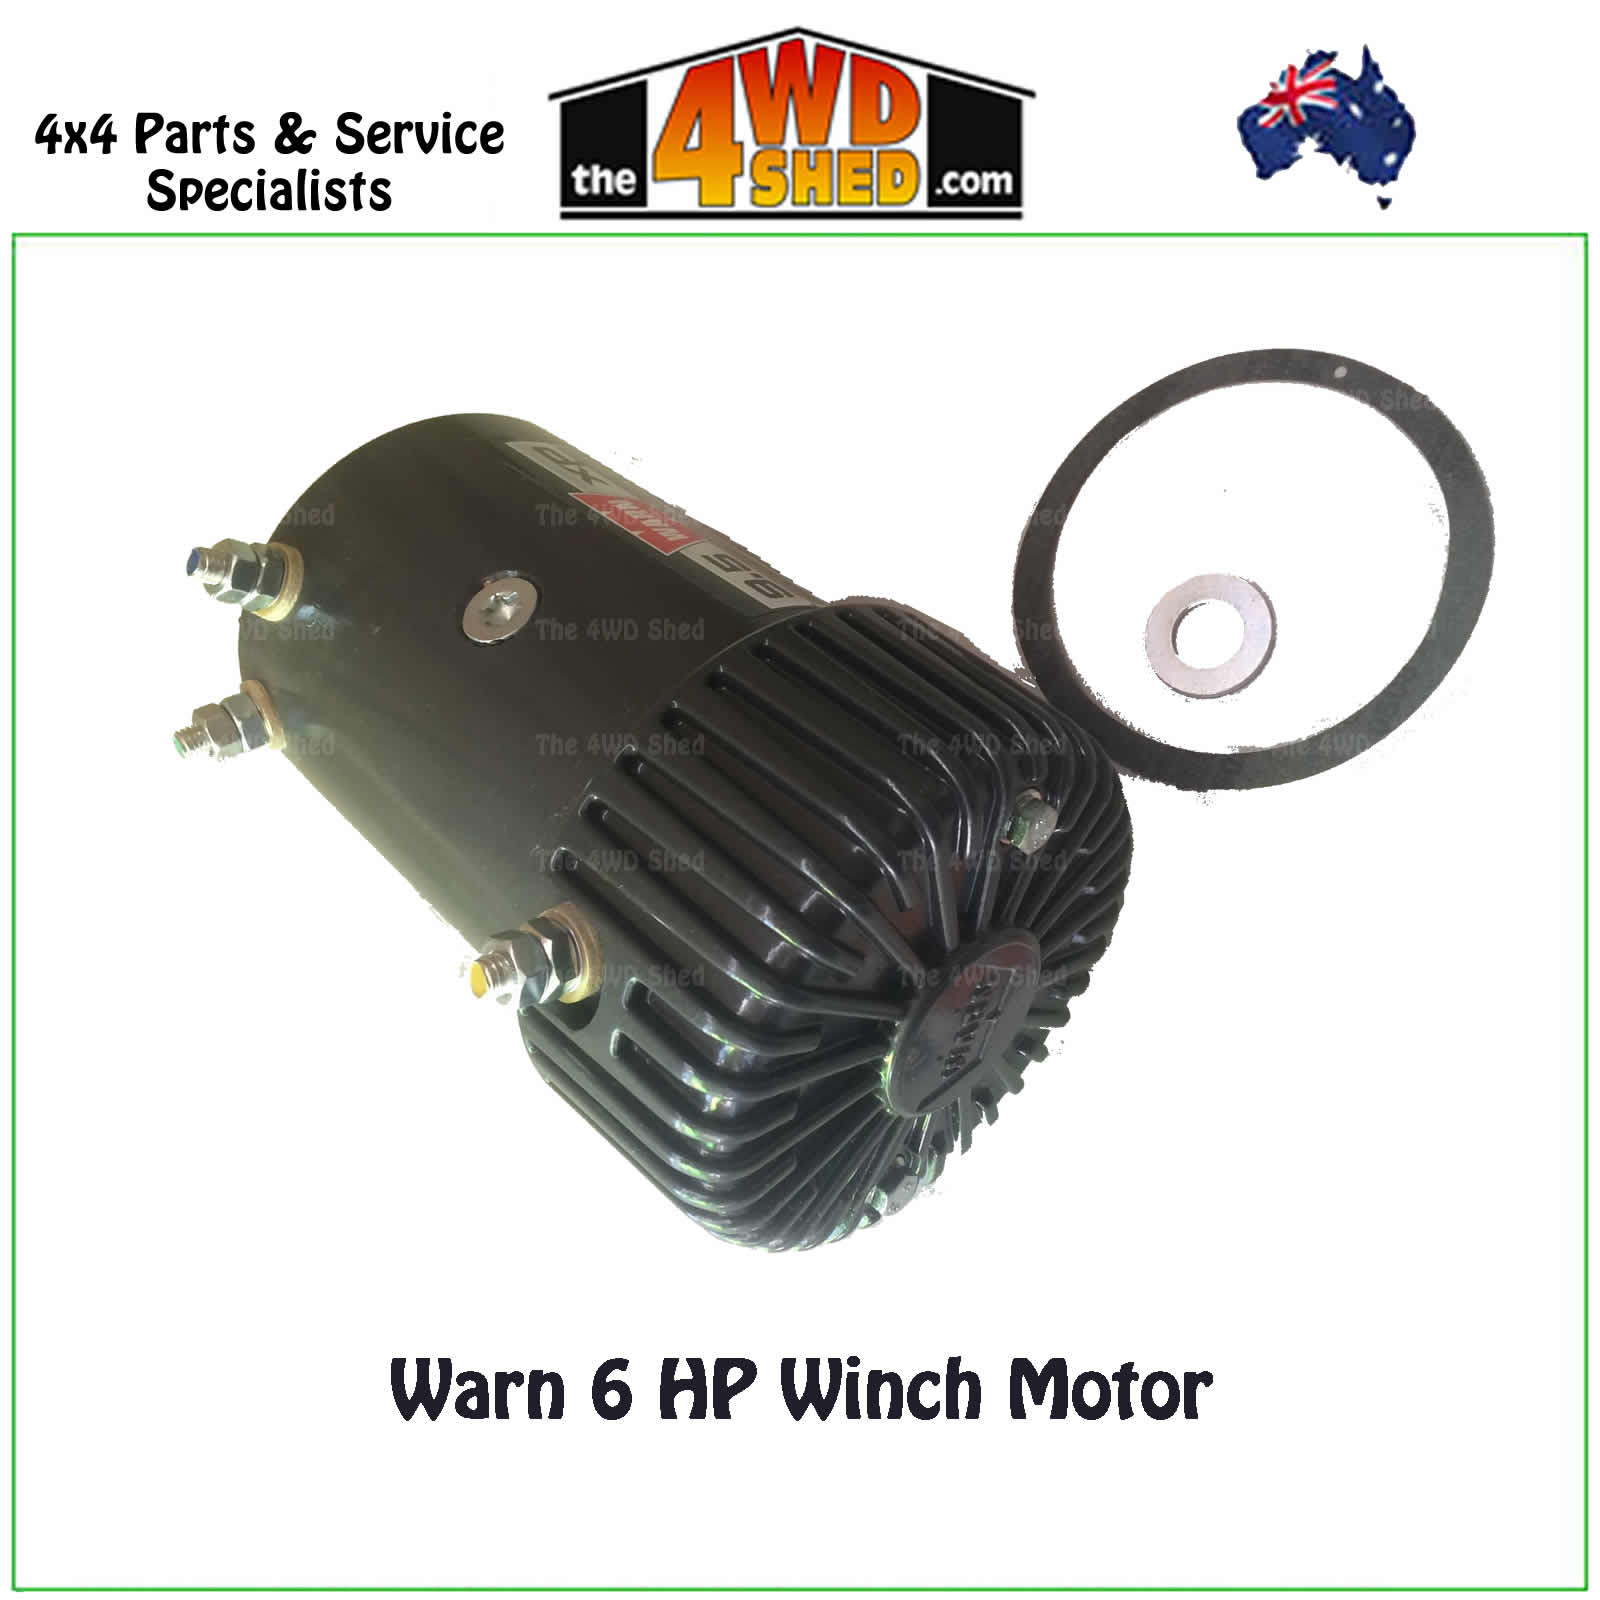 Warn Winch Spares Australia 76080 Wiring Diagram Winches And Accessories High Mount Parts